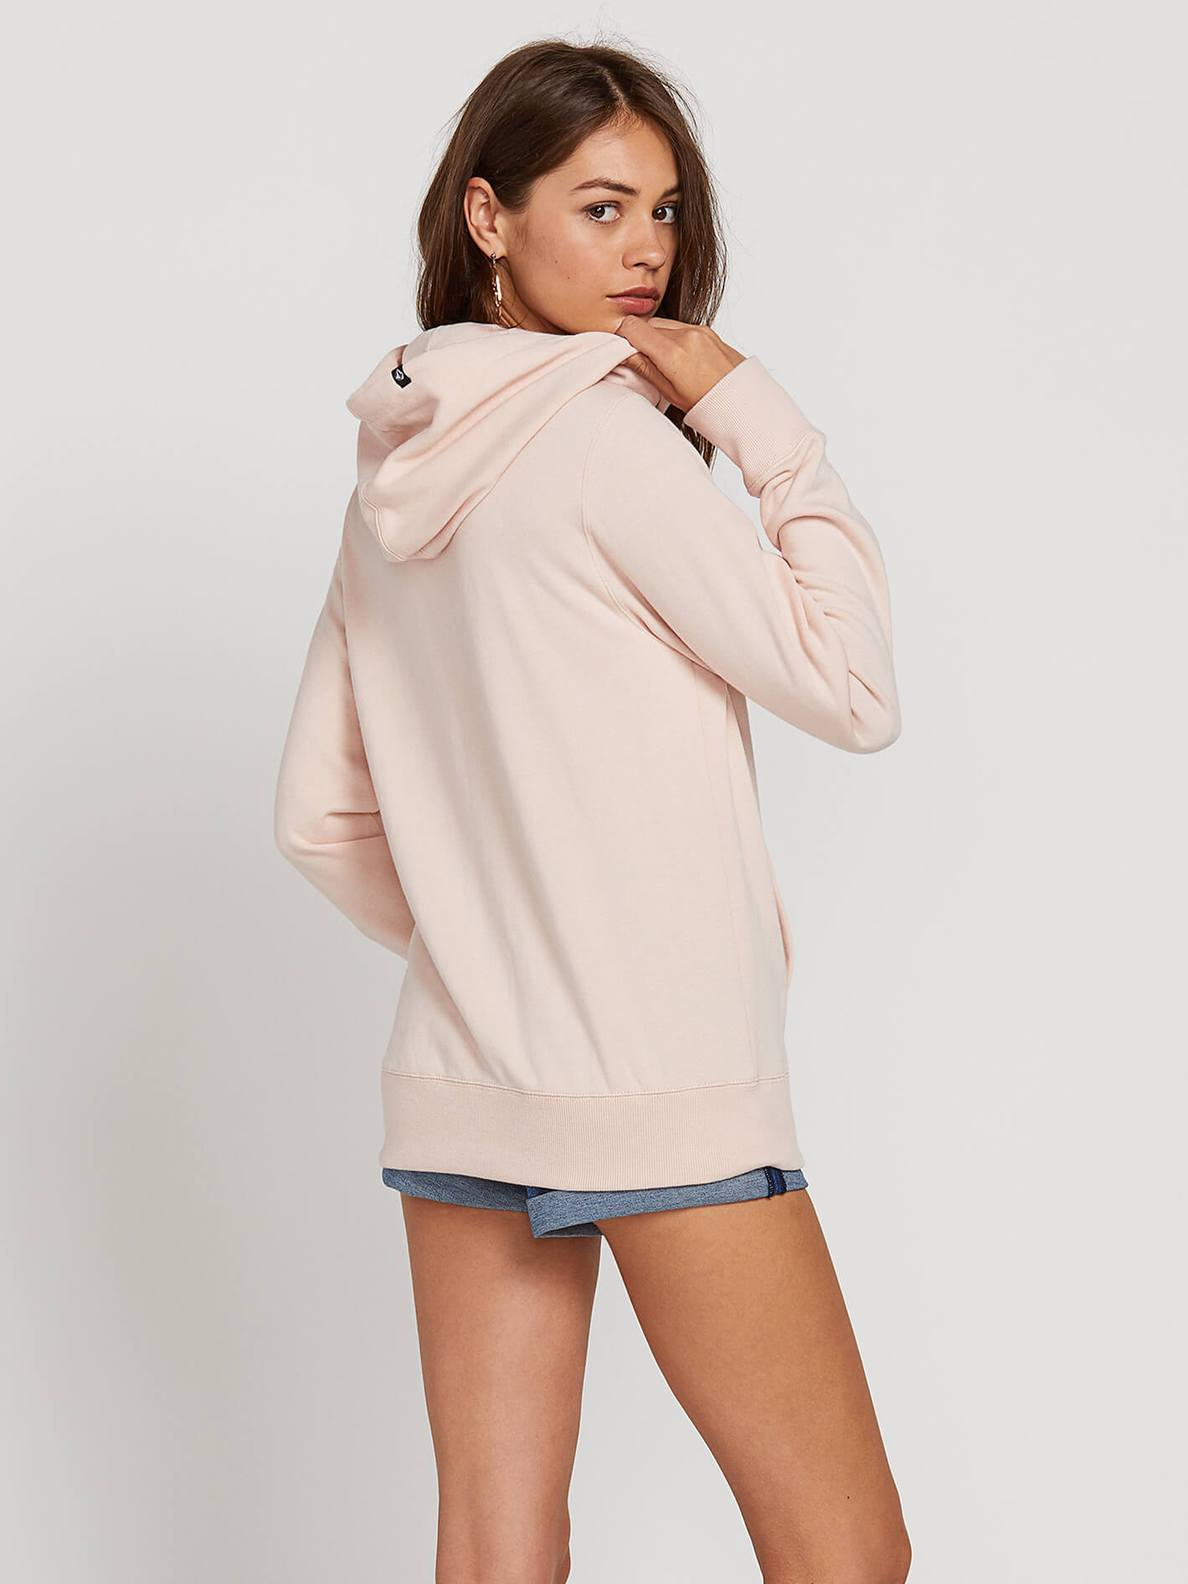 SUDADERA VOLCOM VOL STONE - MELLOW ROSE